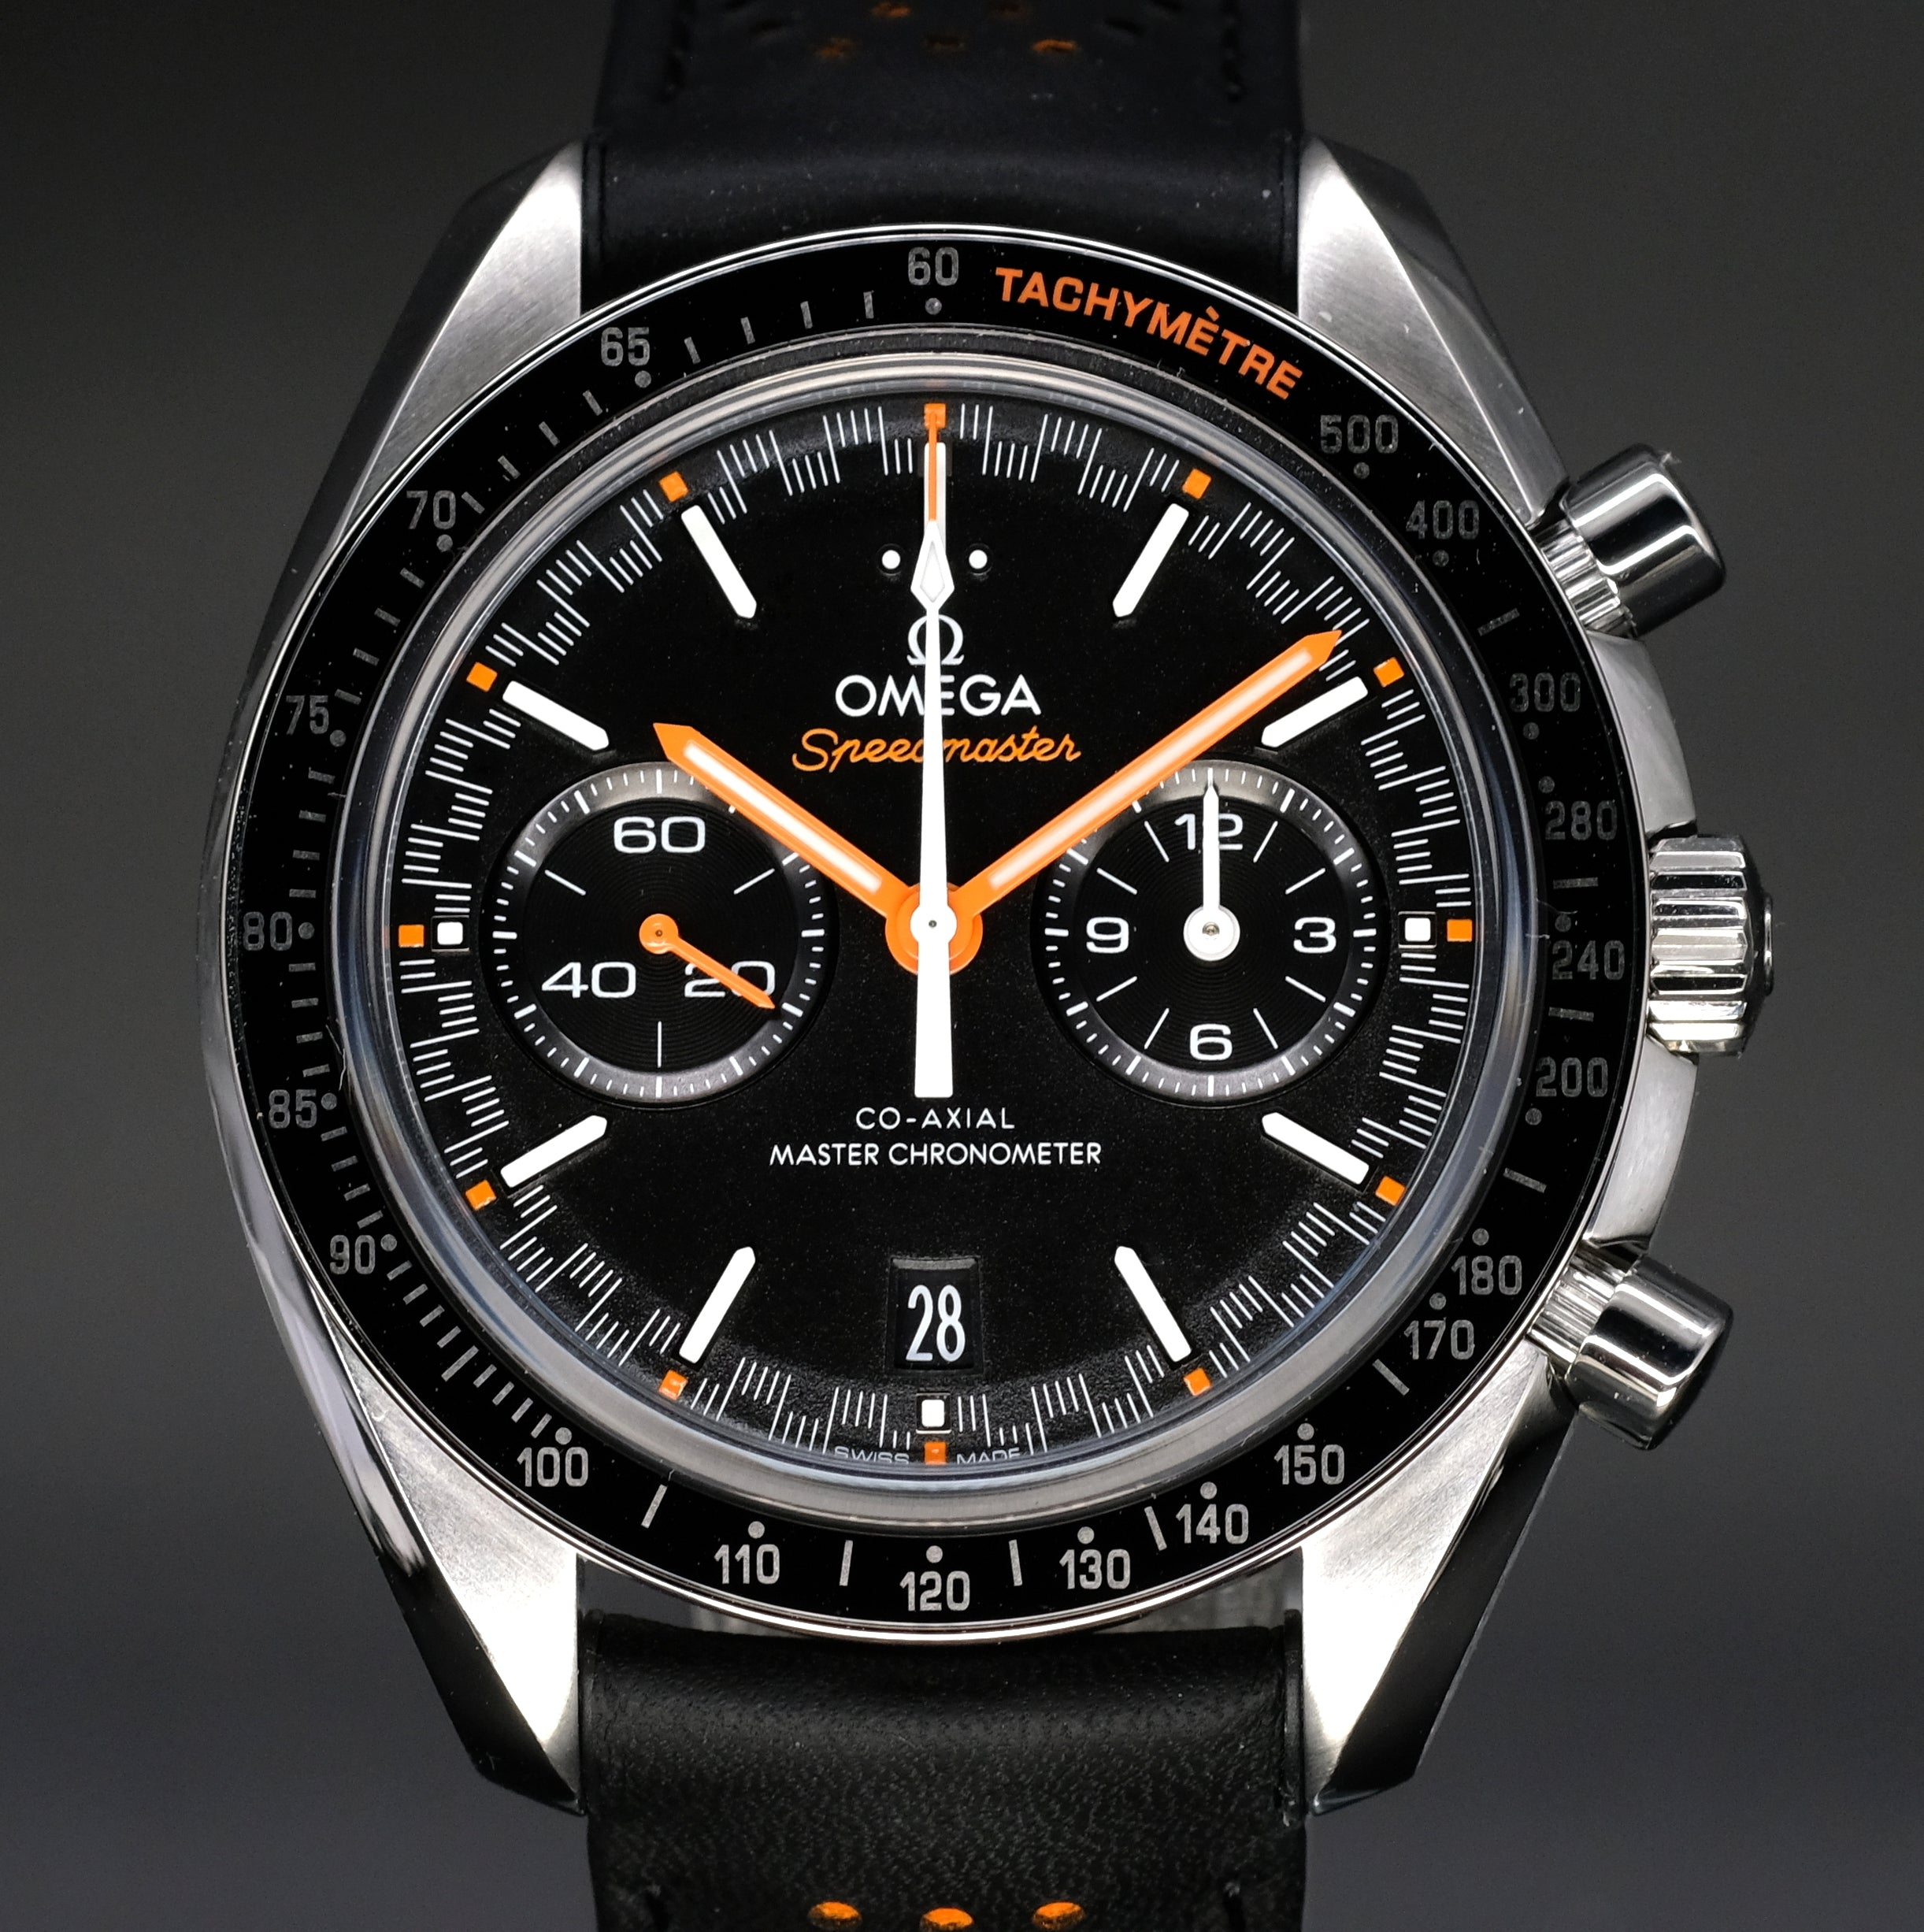 [Brand New Watch] Omega Speedmaster Racing Omega Co-Axial Master Chronometer Chronograph 44.25mm 329.32.44.51.01.001